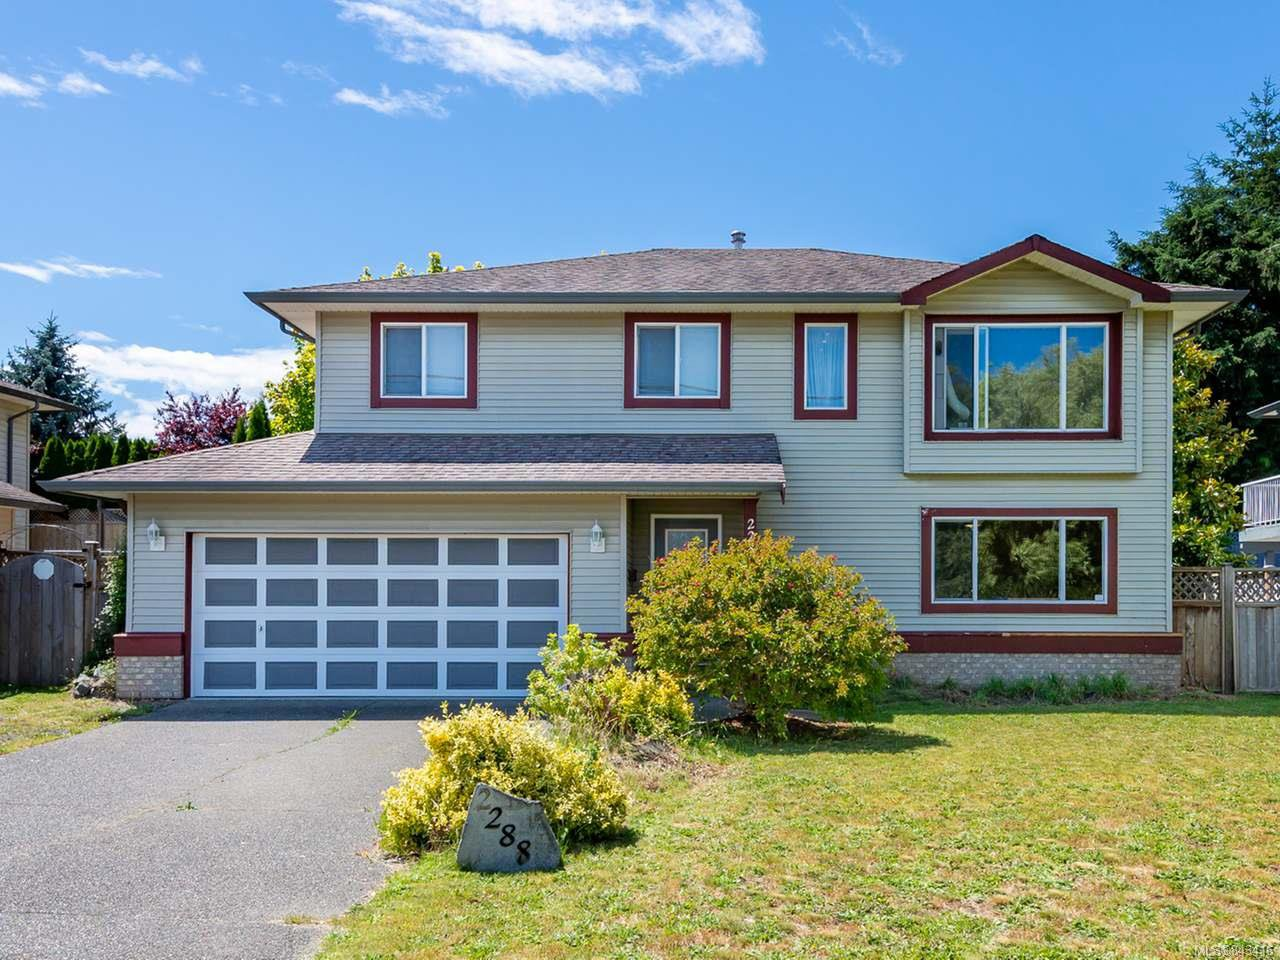 Main Photo: 2288 Galerno Rd in CAMPBELL RIVER: CR Willow Point Single Family Detached for sale (Campbell River)  : MLS®# 843416